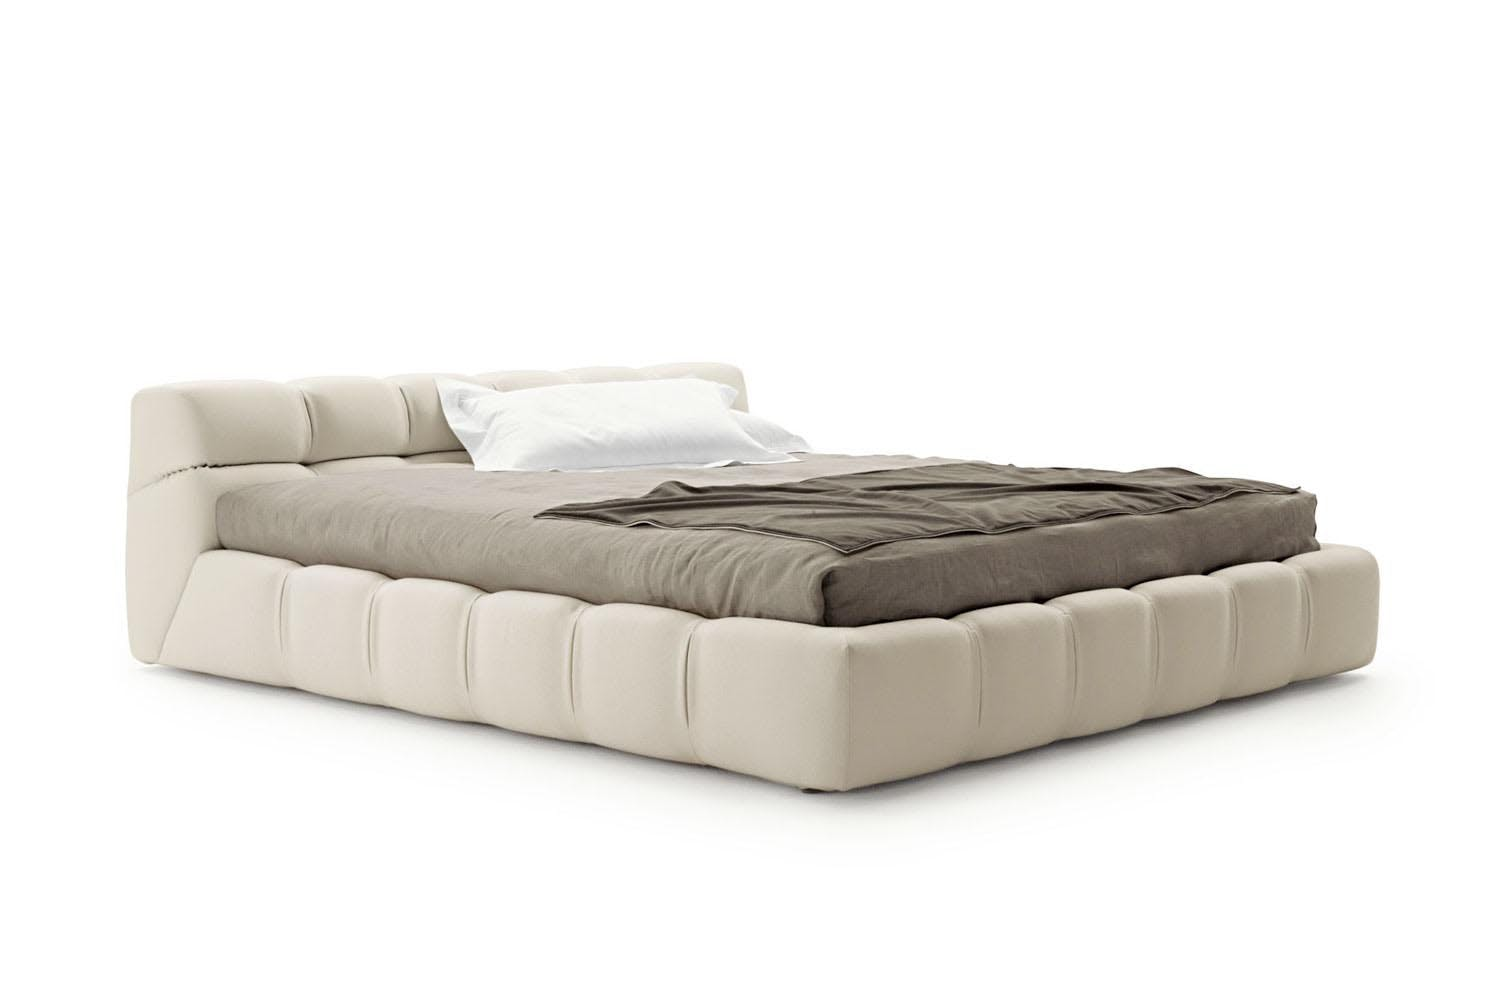 Tufty bed by patricia urquiola for b b italia space for B and b italia beds